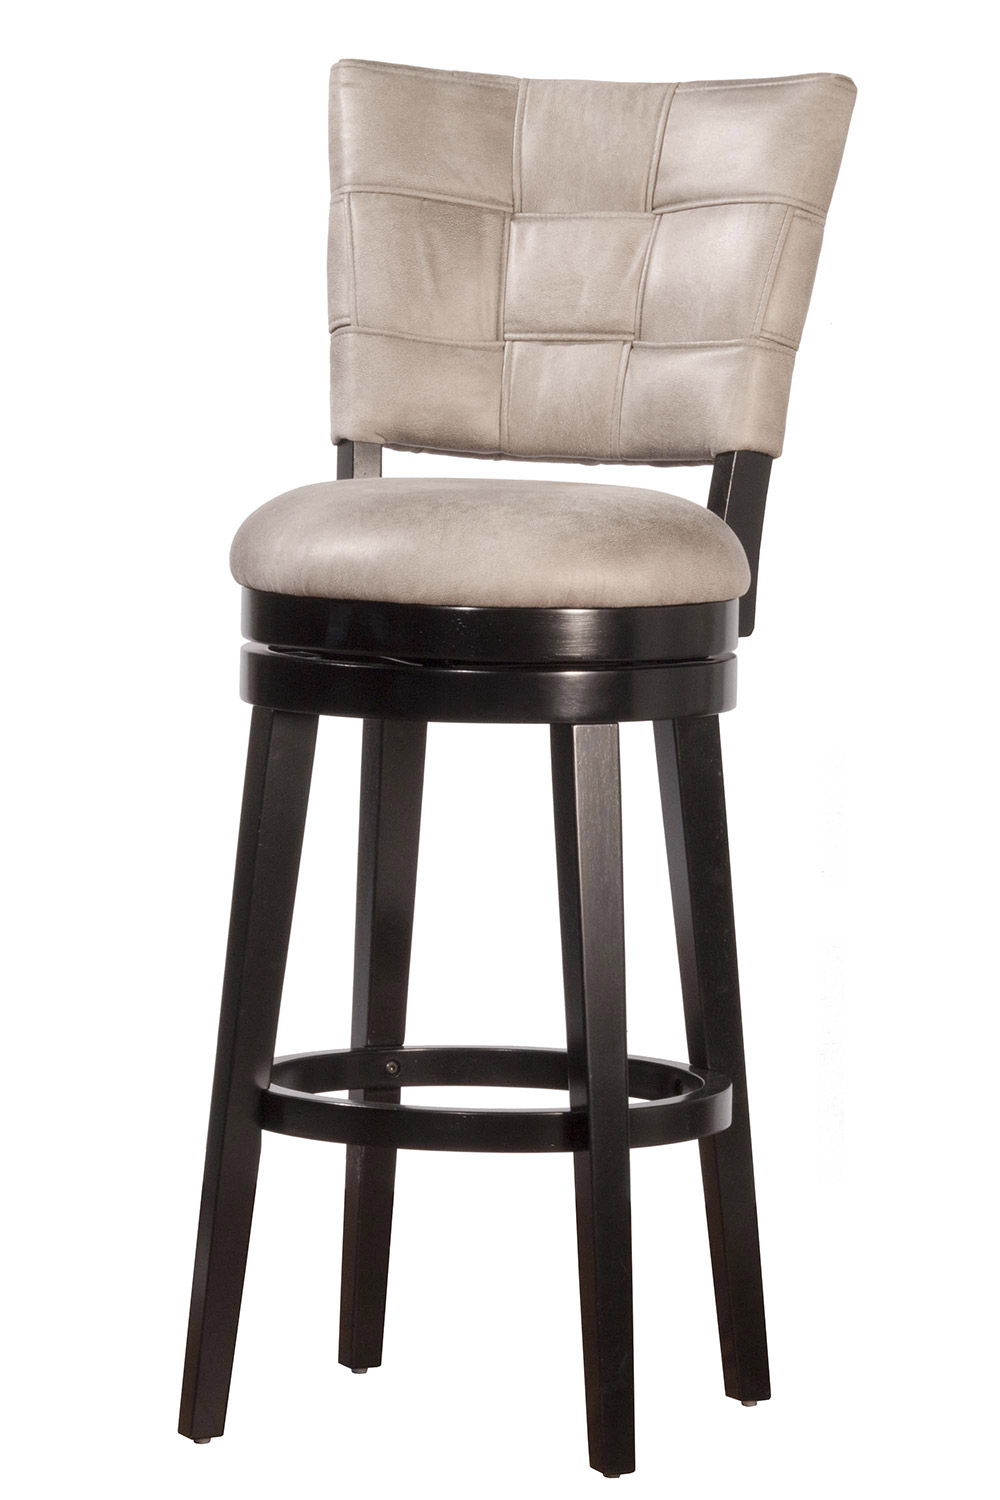 Hillsdale Kaede Swivel Bar Stool - Black